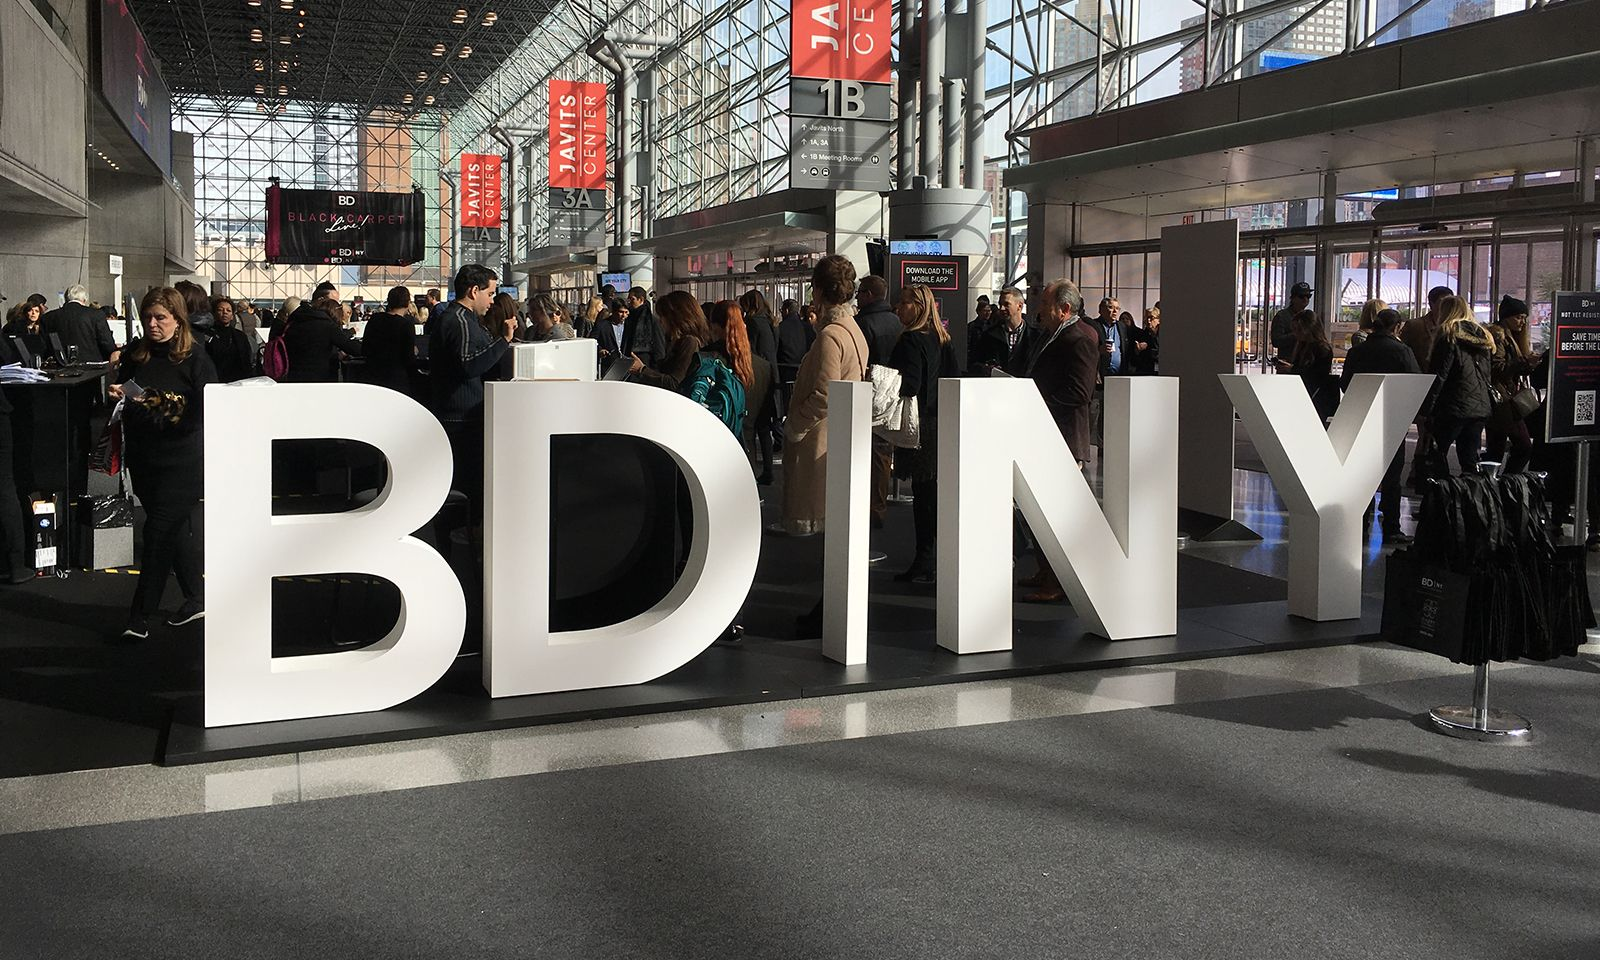 [Op-ed] BDNY—A Focus on Hospitality Spaces